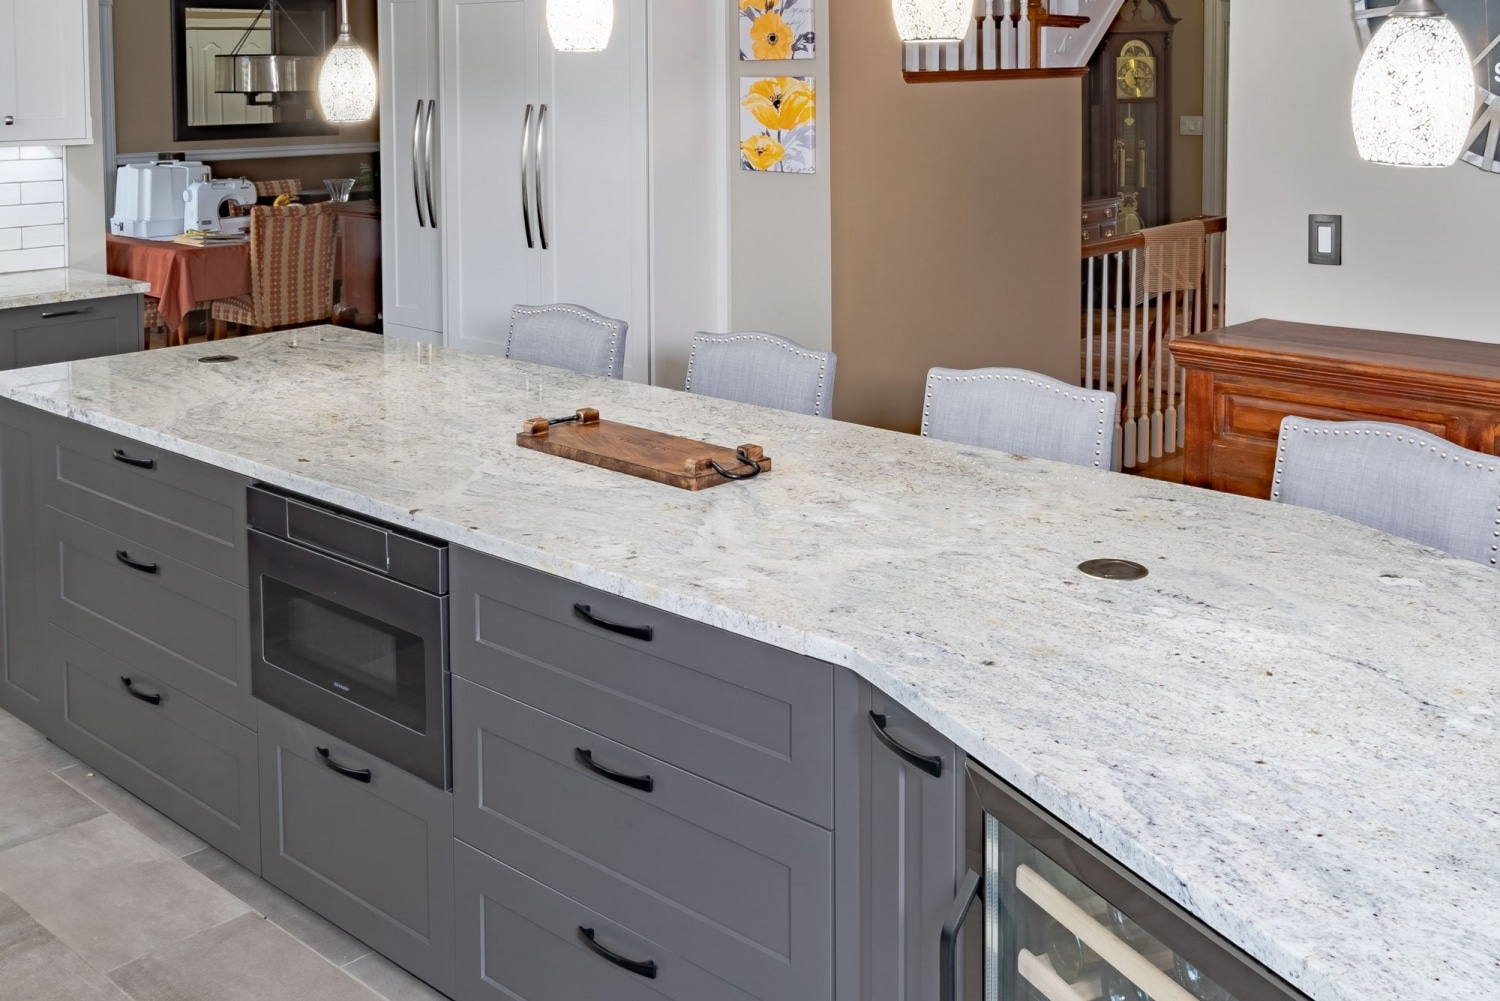 Countertop Gallery - Empire Custom Cabinets & Countertops